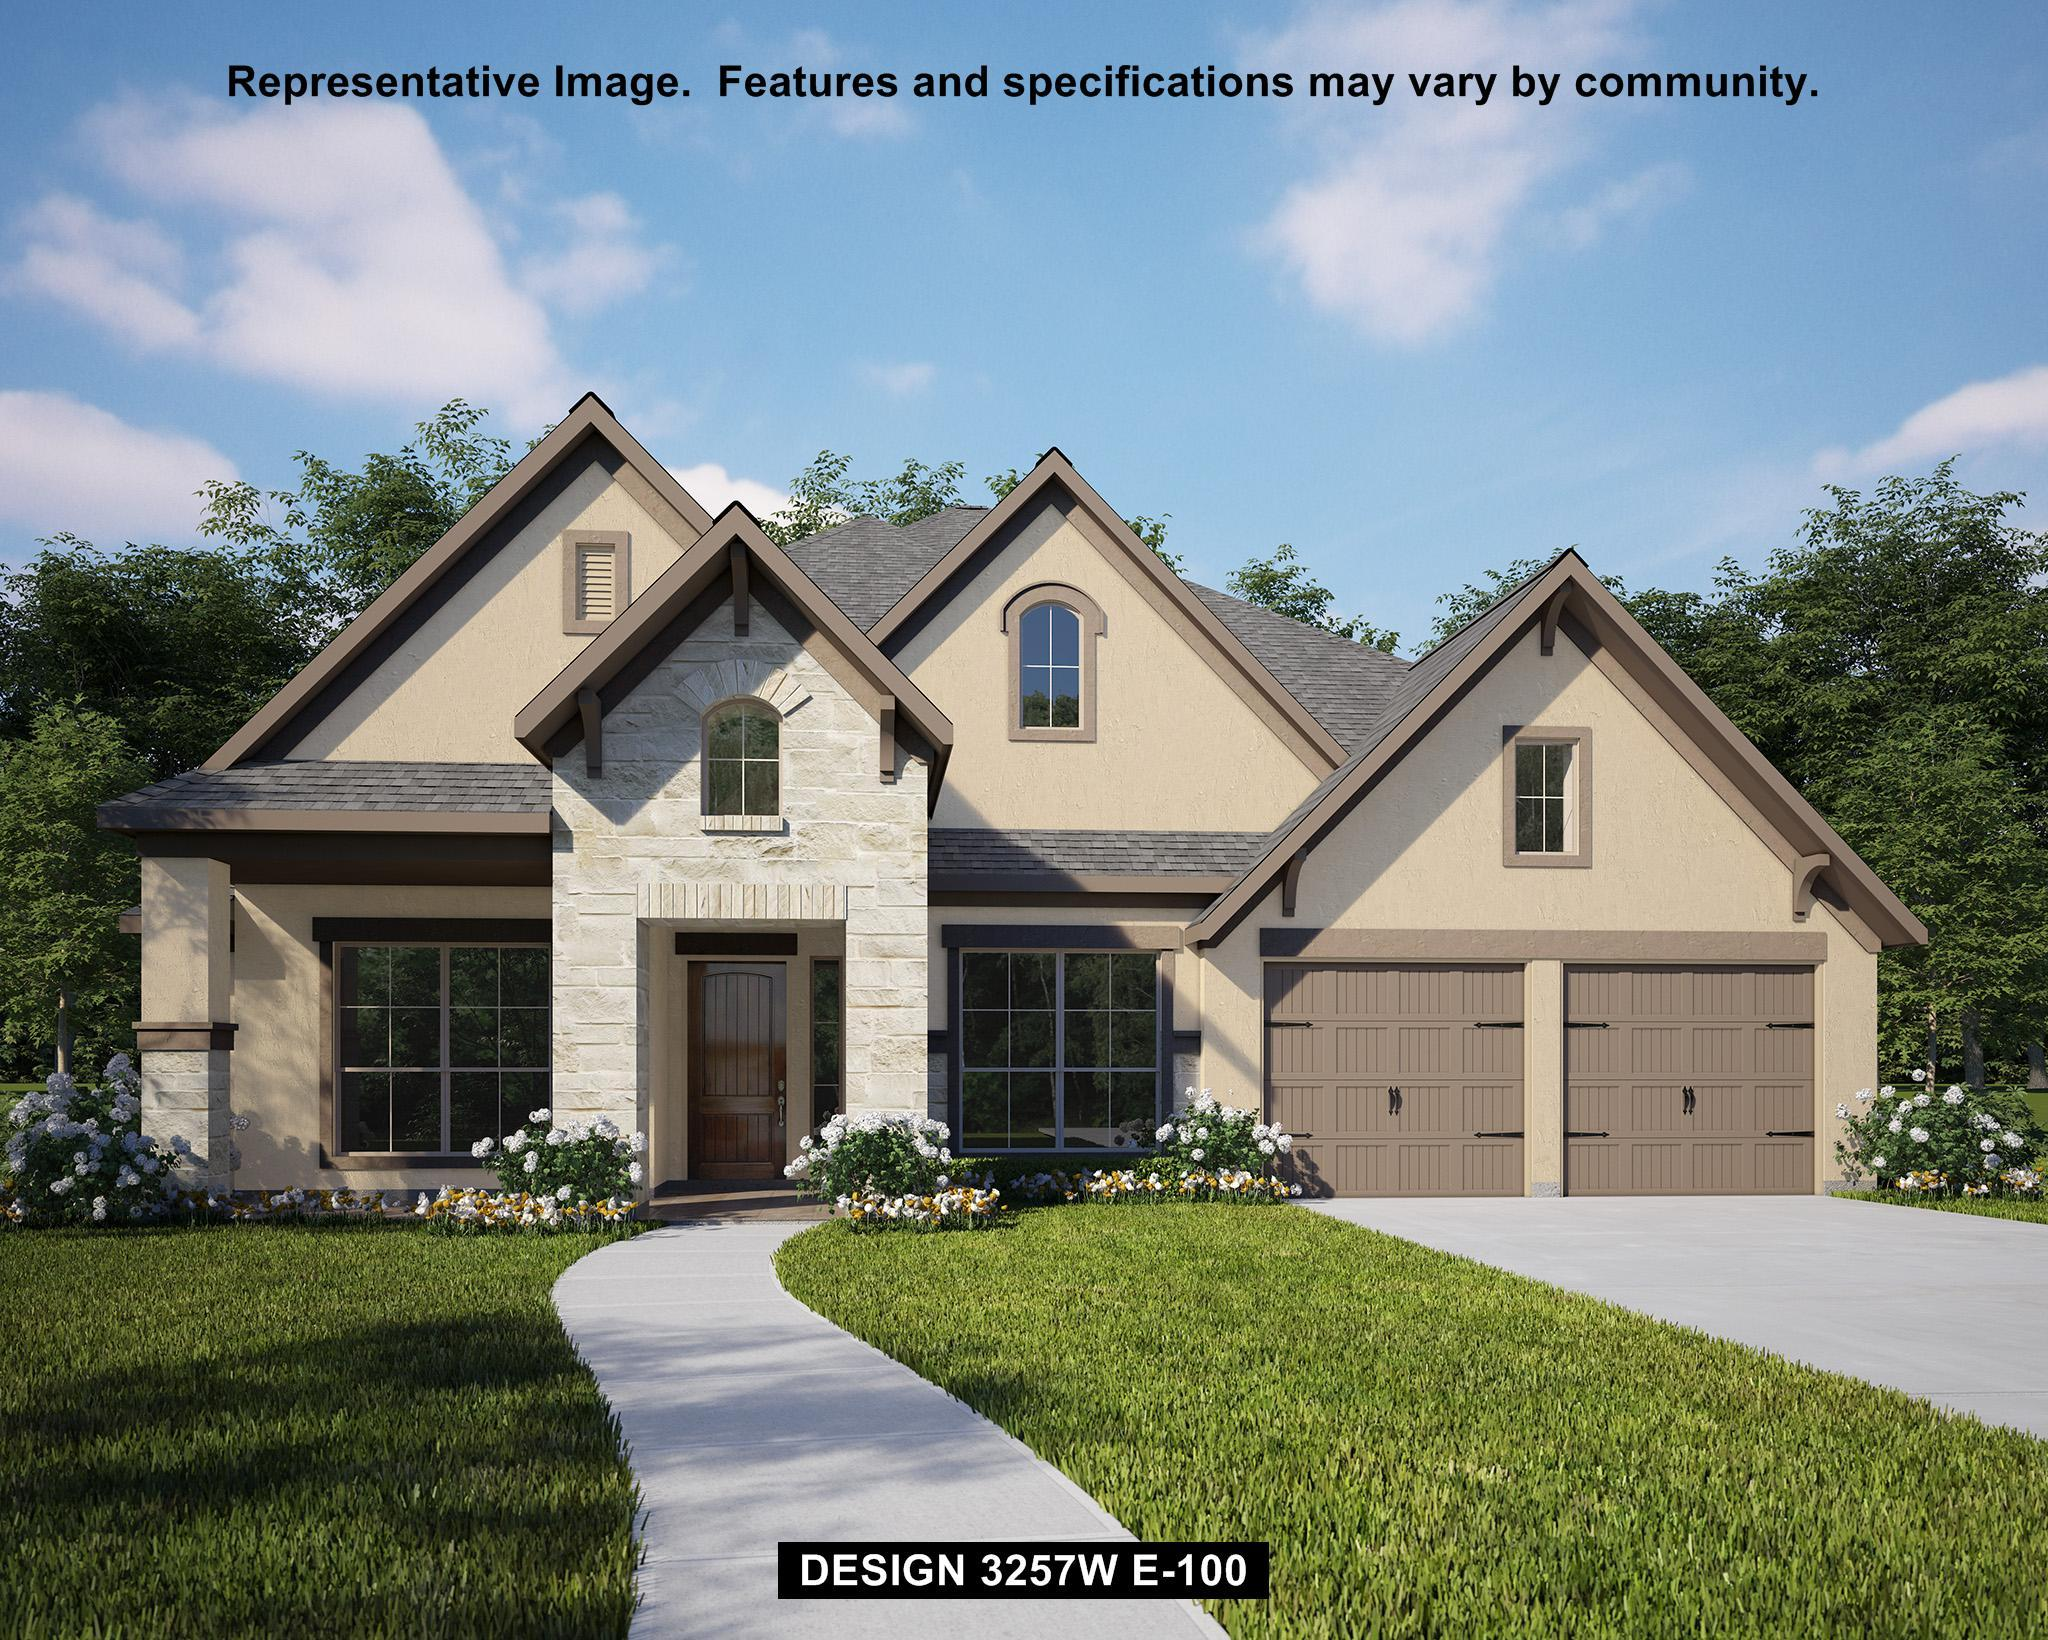 Single Family for Sale at The Village Of Mill Creek 60' - 3257w 2863 Coral Way Seguin, Texas 78155 United States